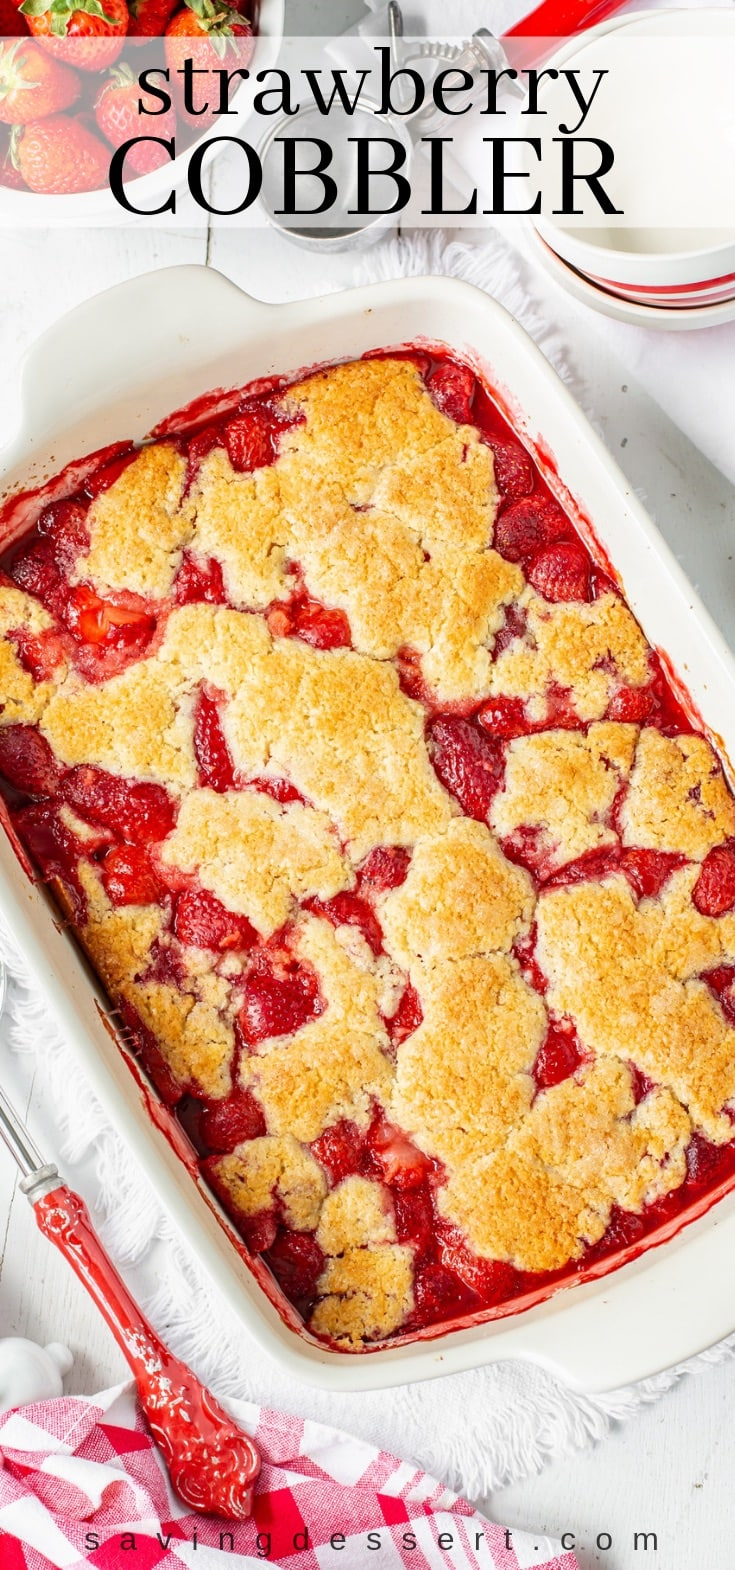 A casserole dish with a juicy strawberry cobbler with sweet crumbled biscuit topping